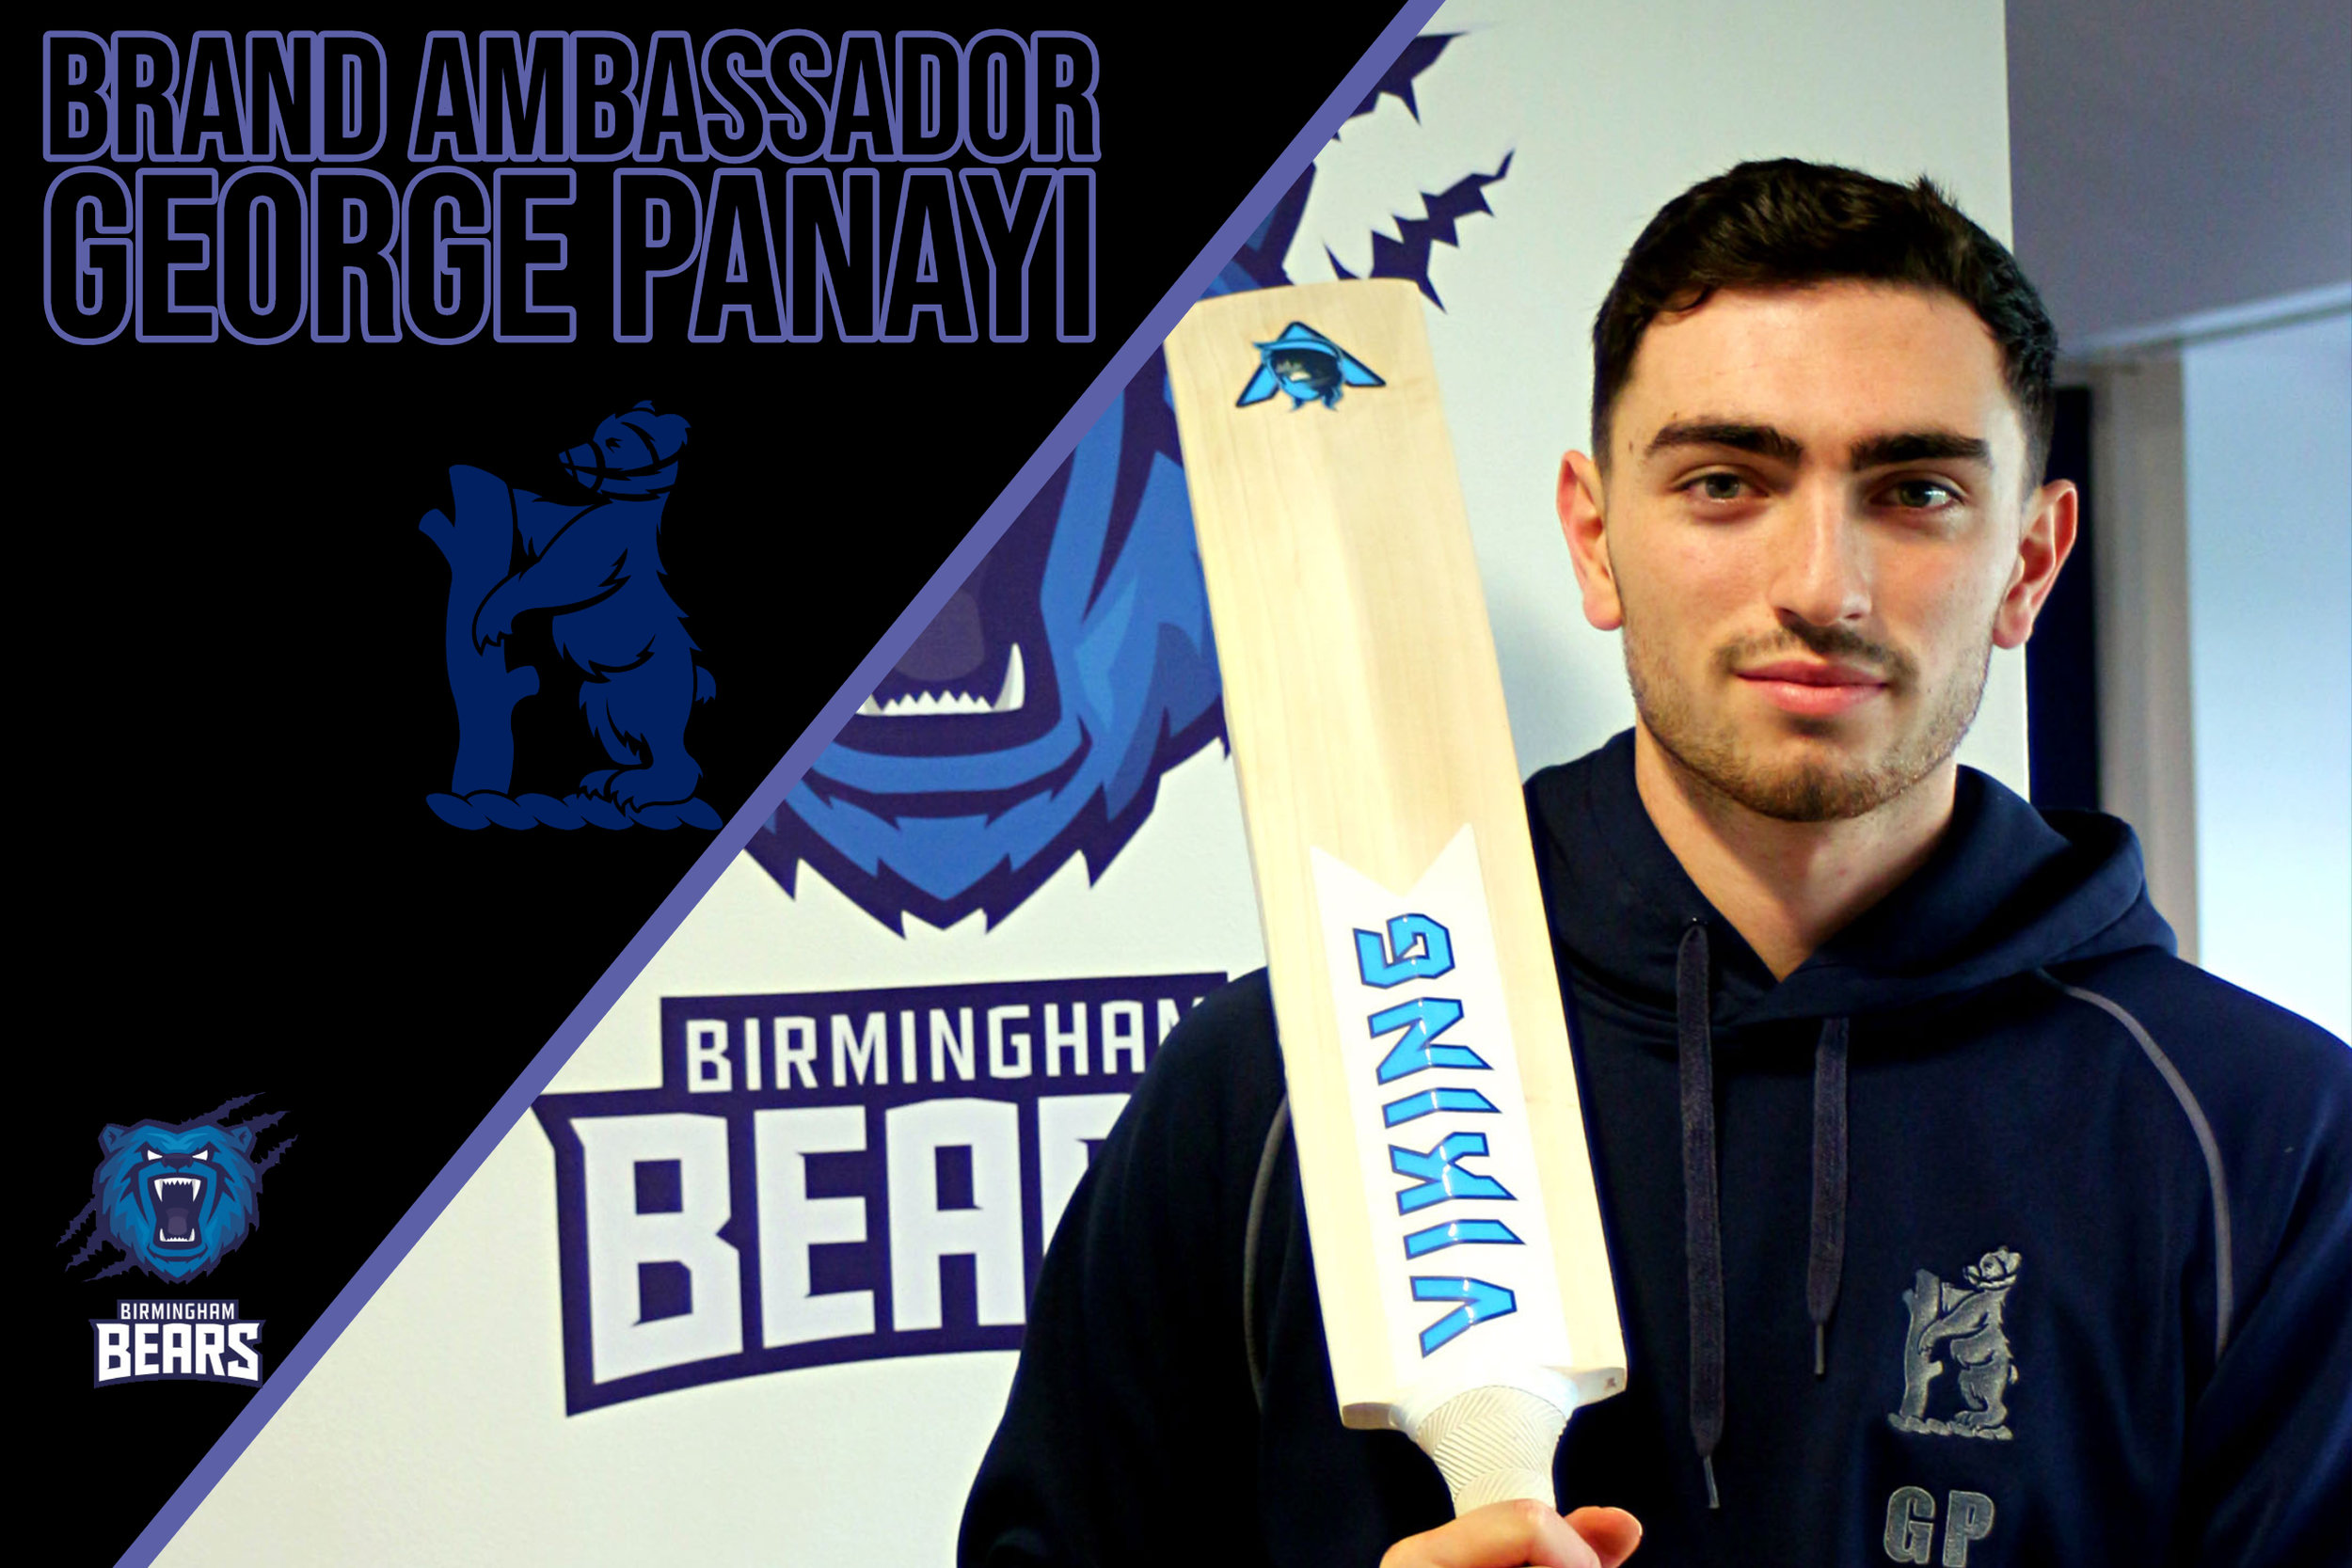 George Panayi - A seam bowling all -rounder, who plays for Warwickshire County Cricket Club.George is using the Odin and Hel-Fyr ranges for 2019.you can follow George on twitter twitter.com/GPanayi